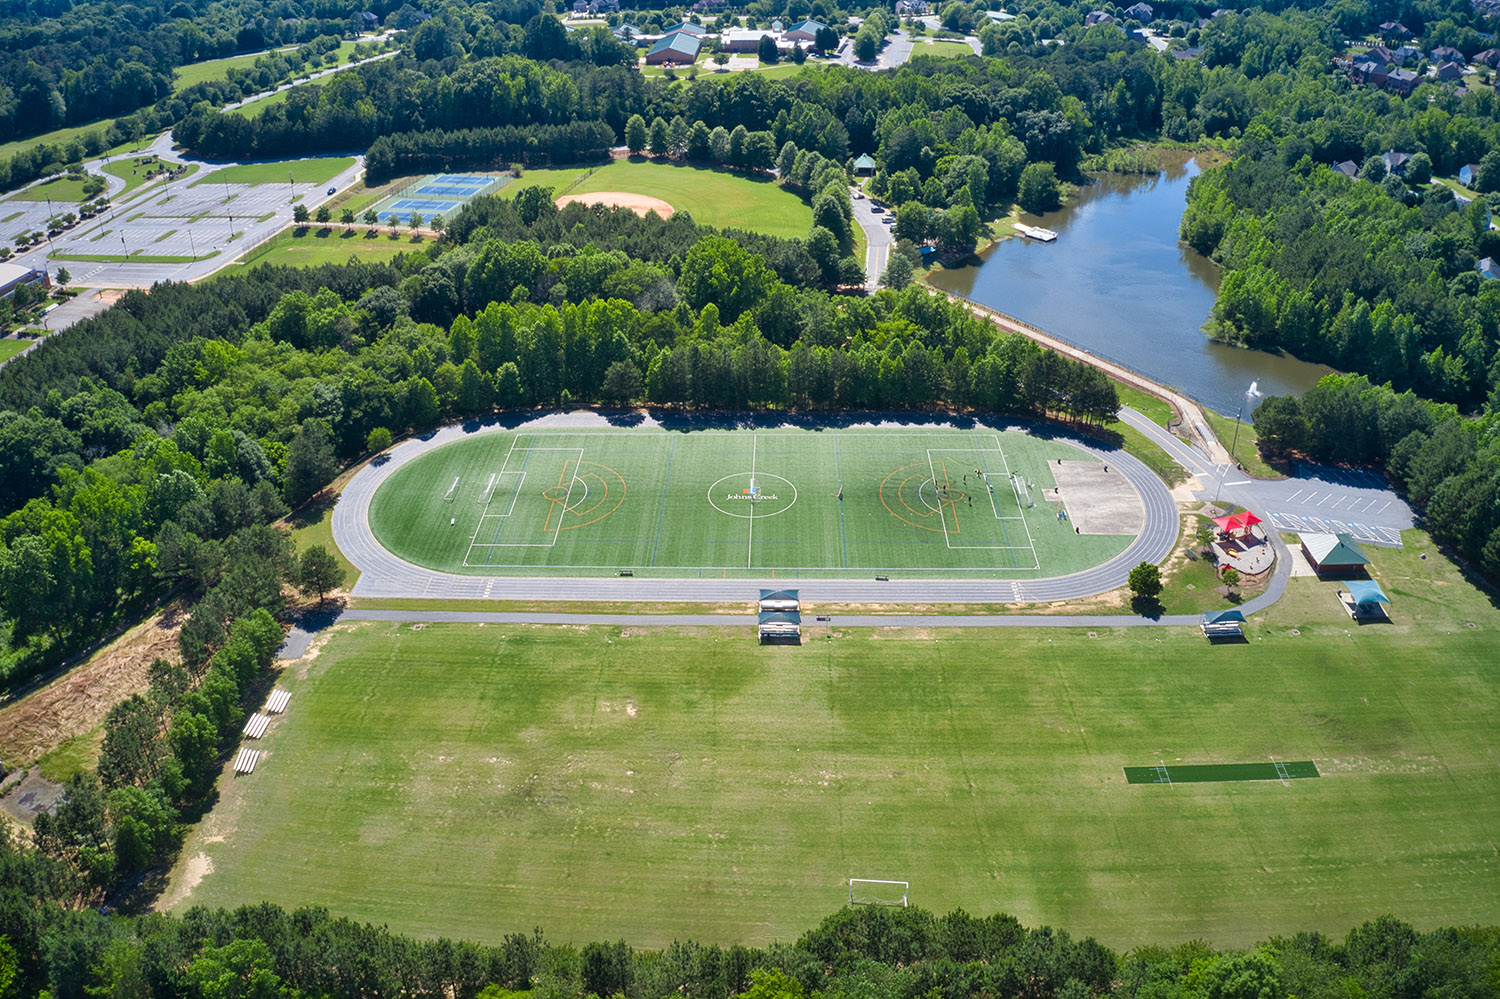 Panoramic above view of recreation center in a suburb park which has soccer field, running track, tennis courts and baseball field